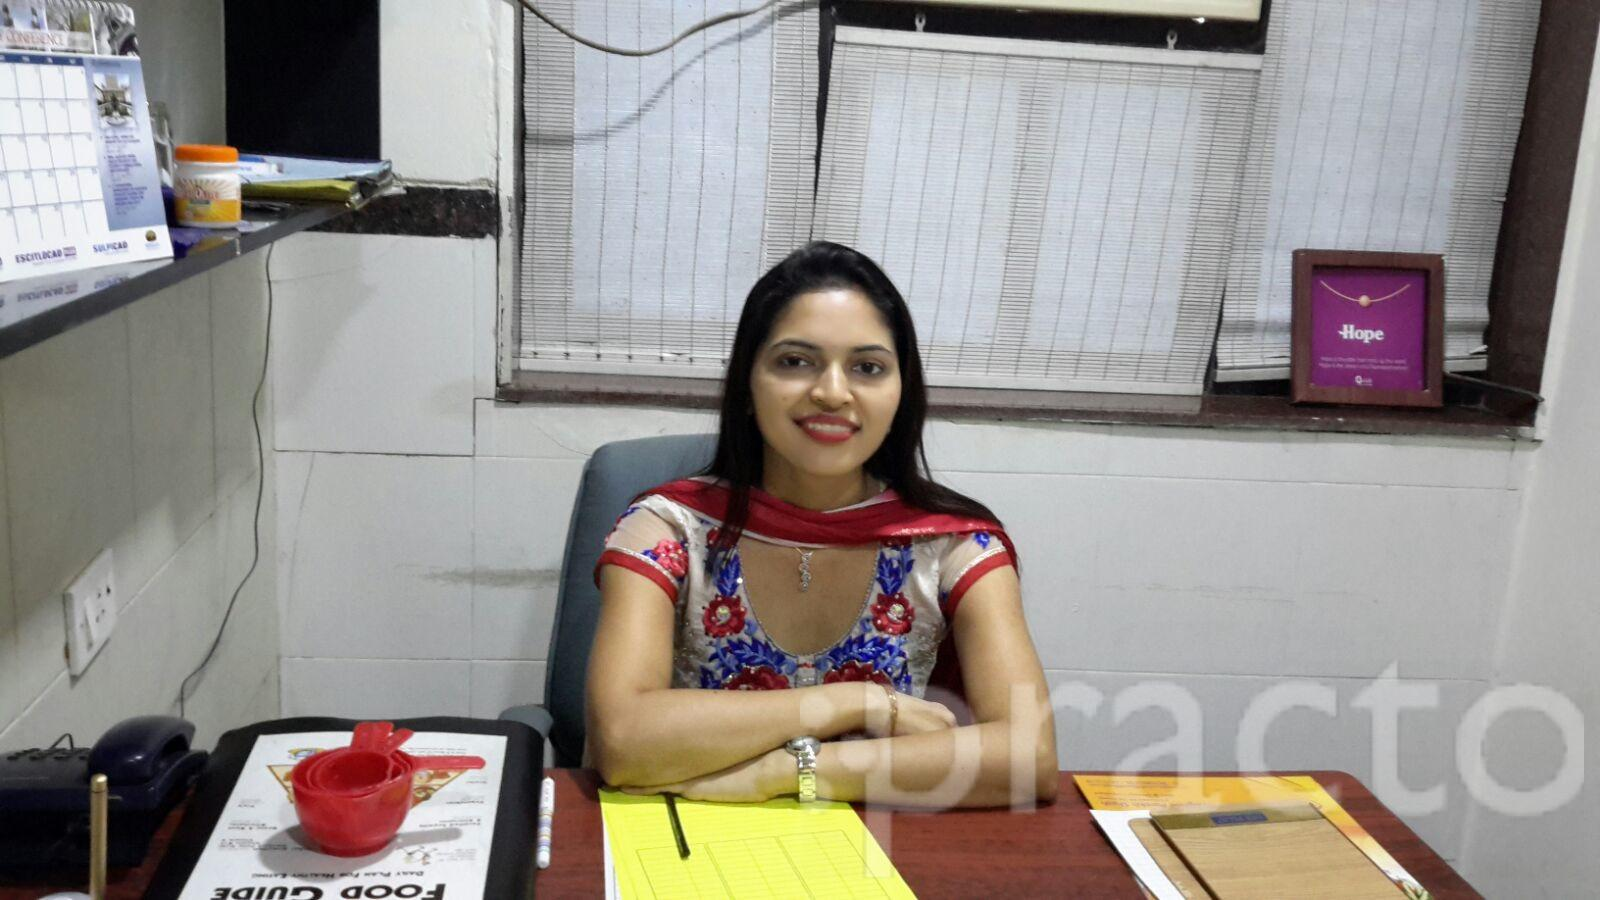 Dr. Meghna Parekh Sheth - Dietitian/Nutritionist